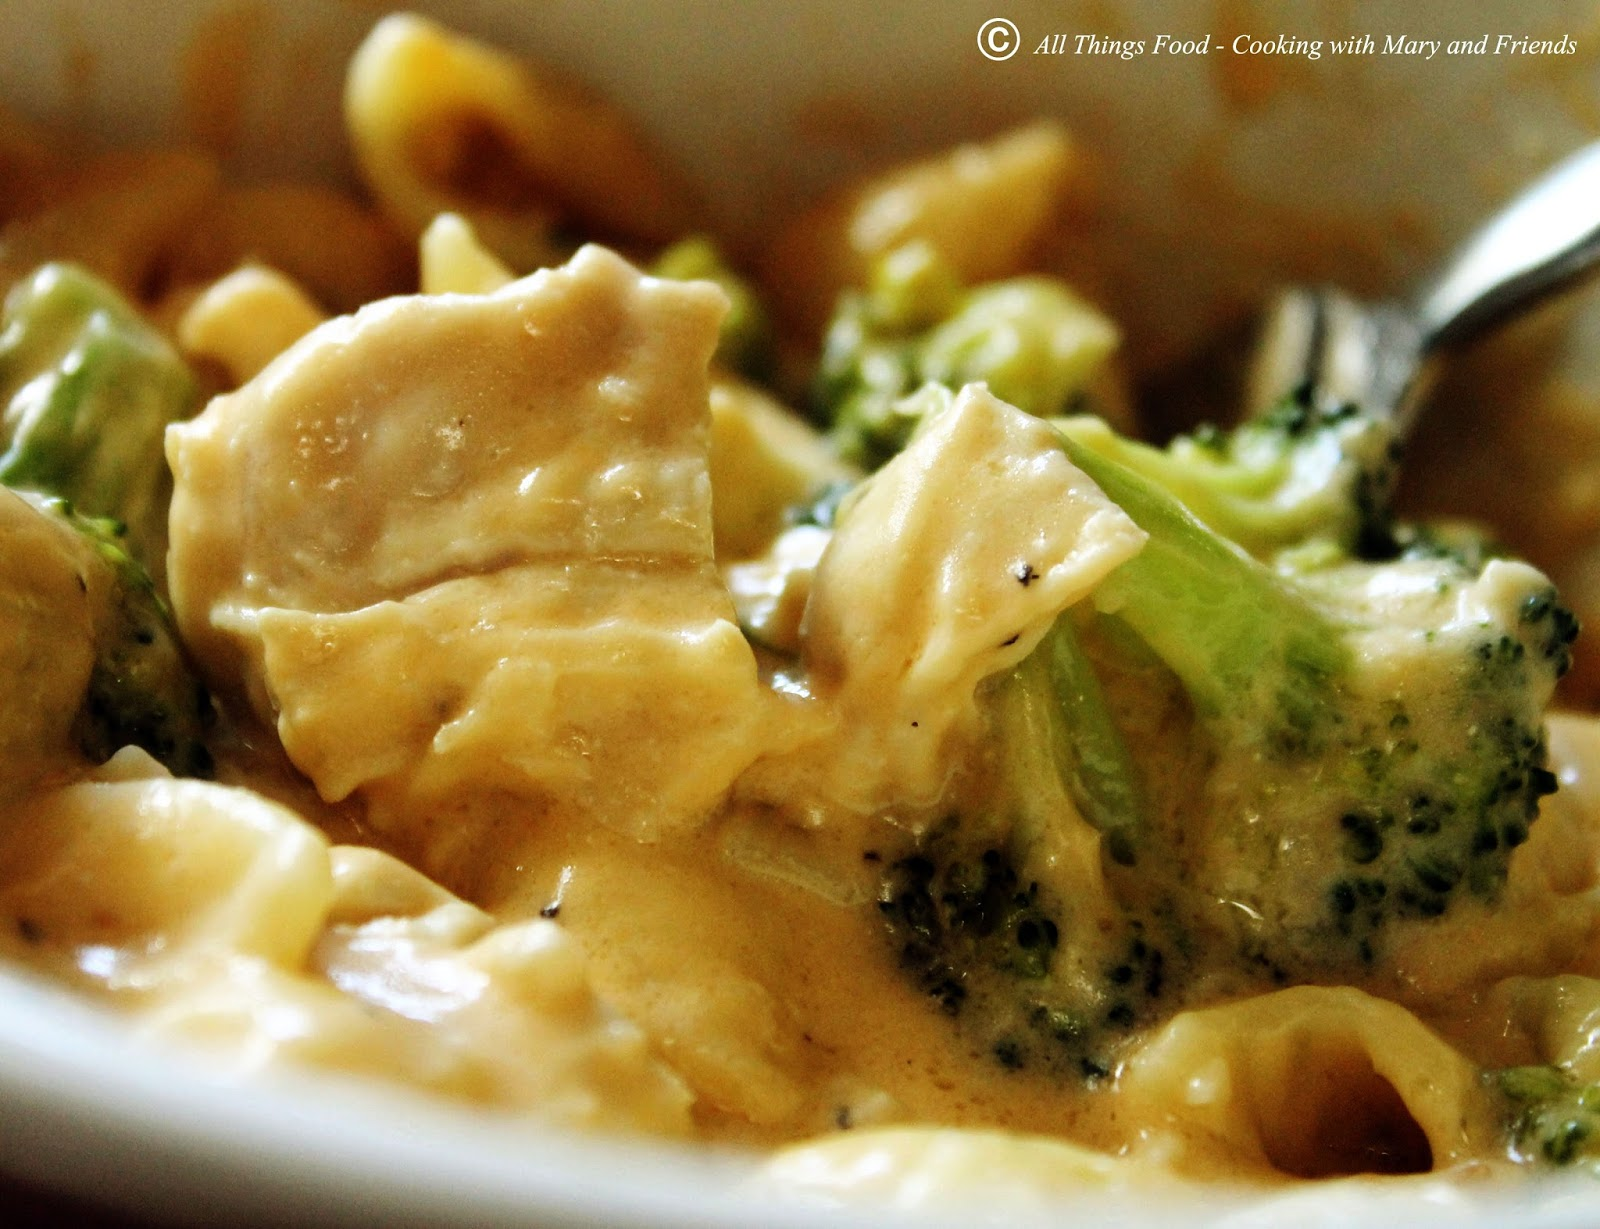 Tasty Cheesy Chicken Broccoli Pasta